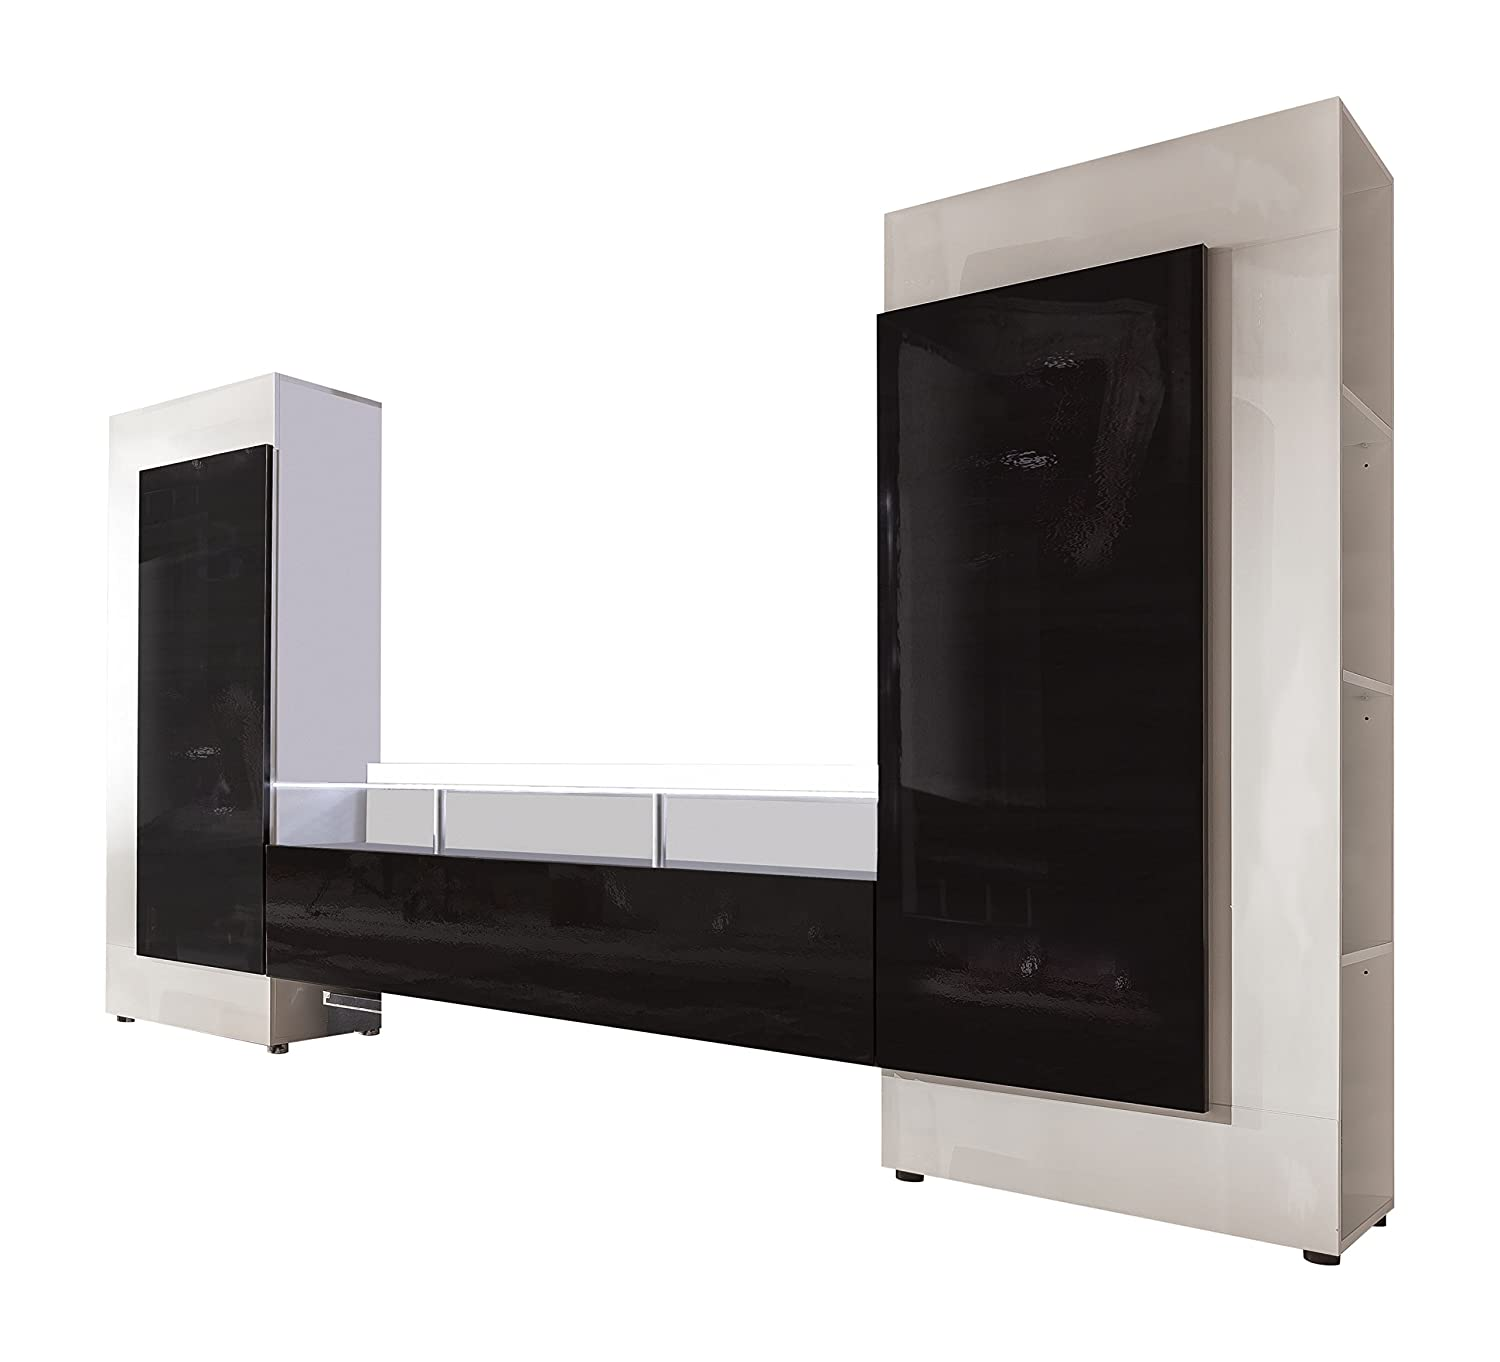 Furnline High Gloss TV Stand Wall Unit Living Room Furniture Set, Cooper  White/Black: Amazon.co.uk: Kitchen U0026 Home